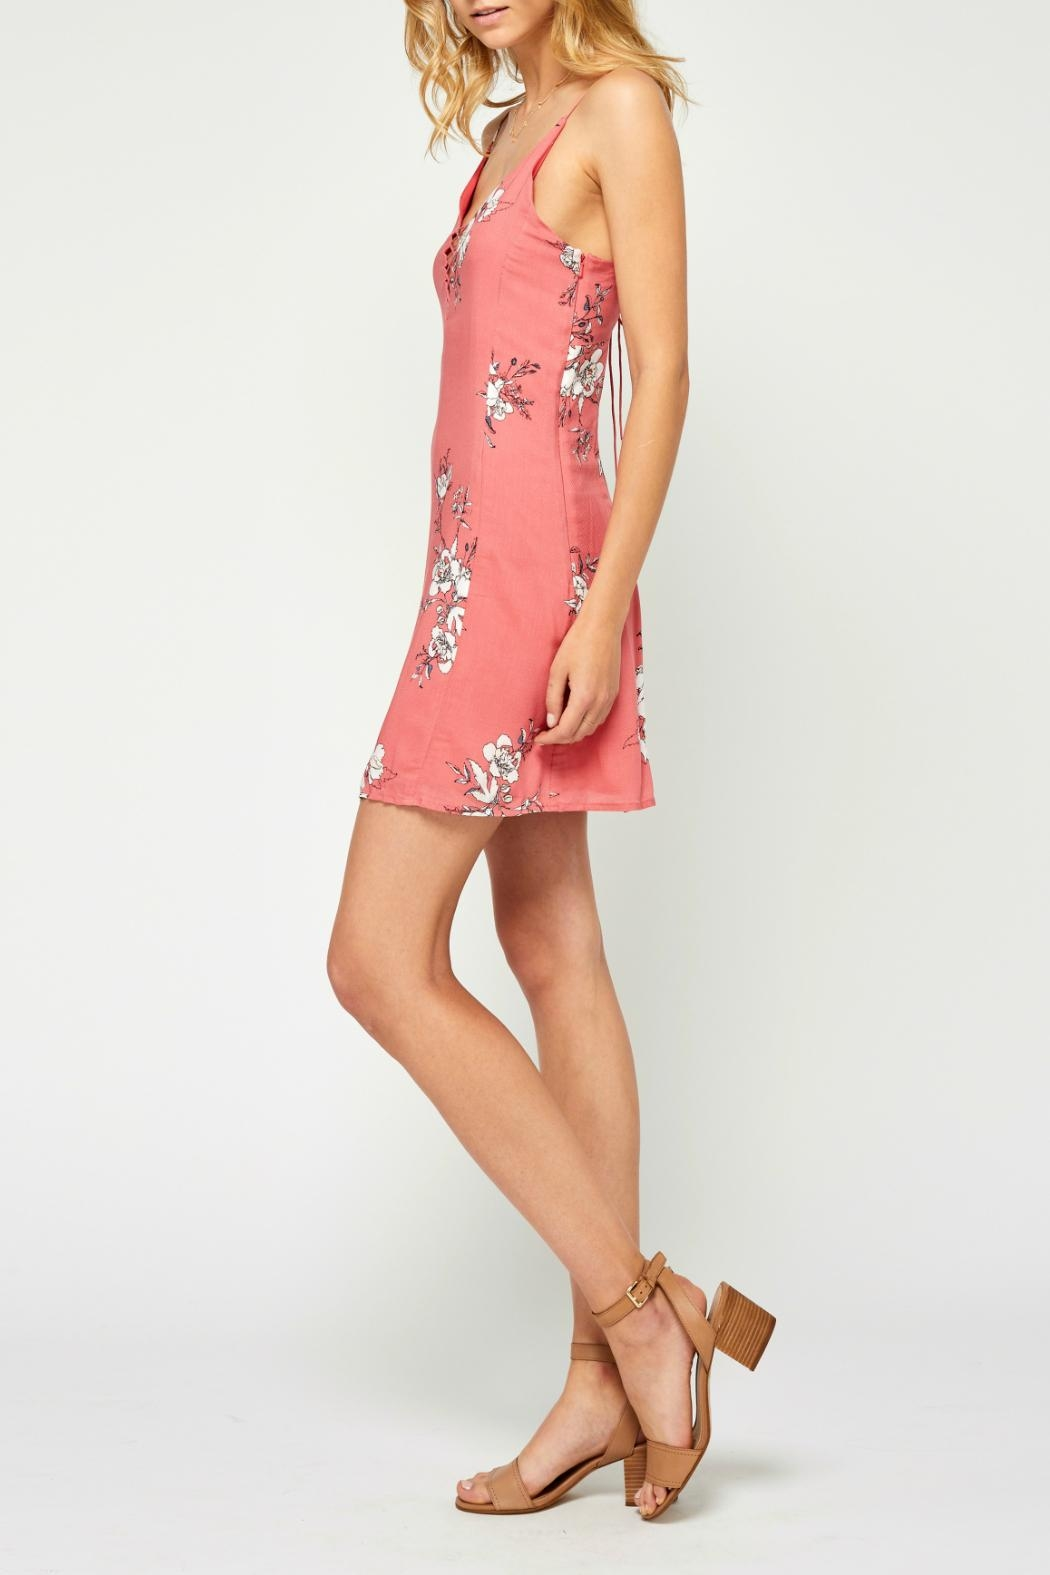 Gentle Fawn Floral Openback Dress - Front Full Image